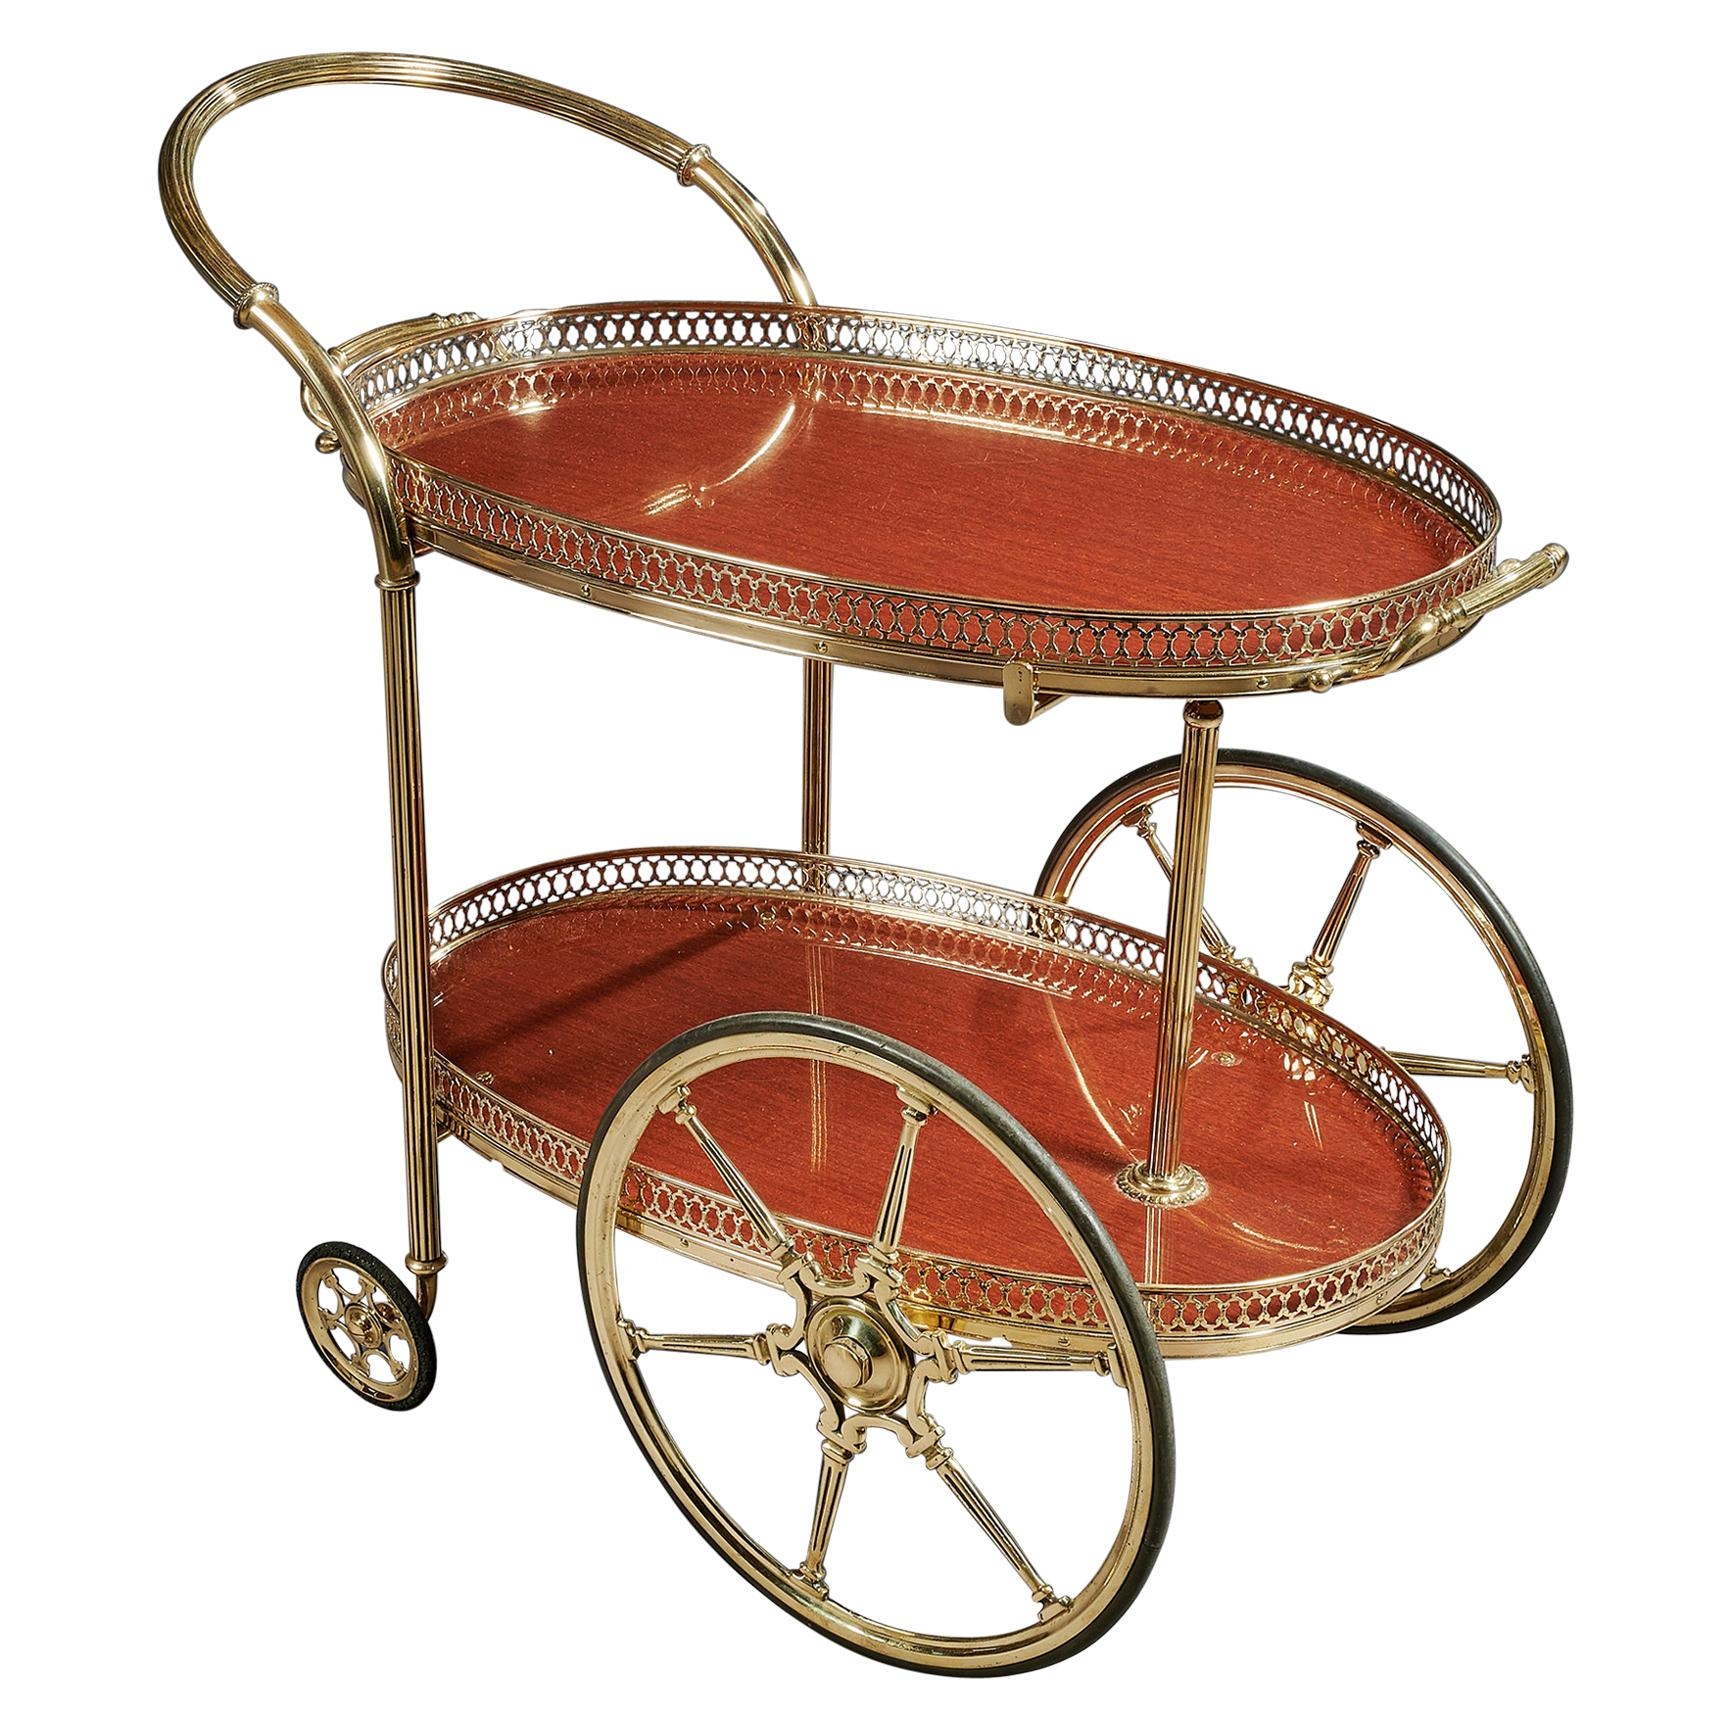 French Mid-20th Century Oval Brass Bar Cart with Removable Tray